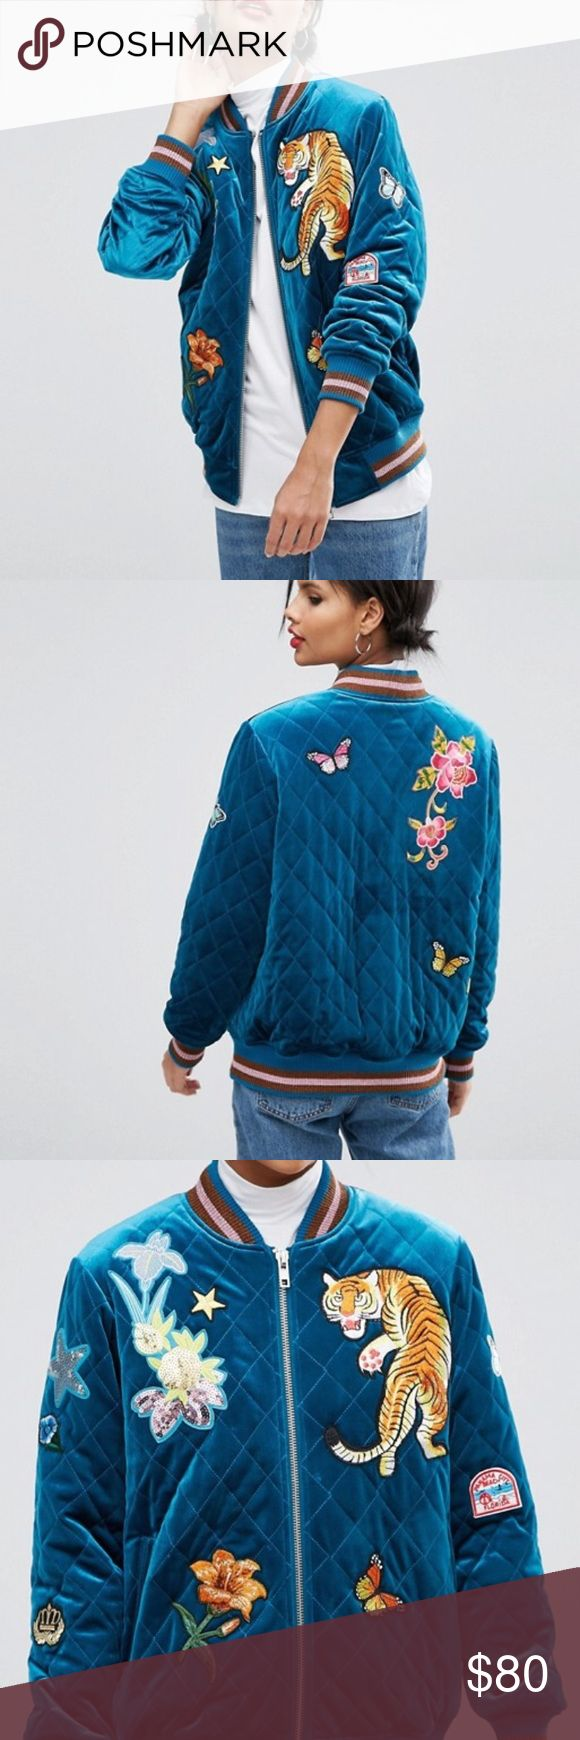 ASOS teal velvet embroidered bomber jacket Brand new with tags. Bomber jacket by ASOS Collection Soft-touch velvet Quilted finish Embroidered detail Baseball collar Zip fastening Functional pockets Ribbed trims Regular fit - true to size Machine wash 93% Polyester, 7% Elastane ASOS Jackets & Coats